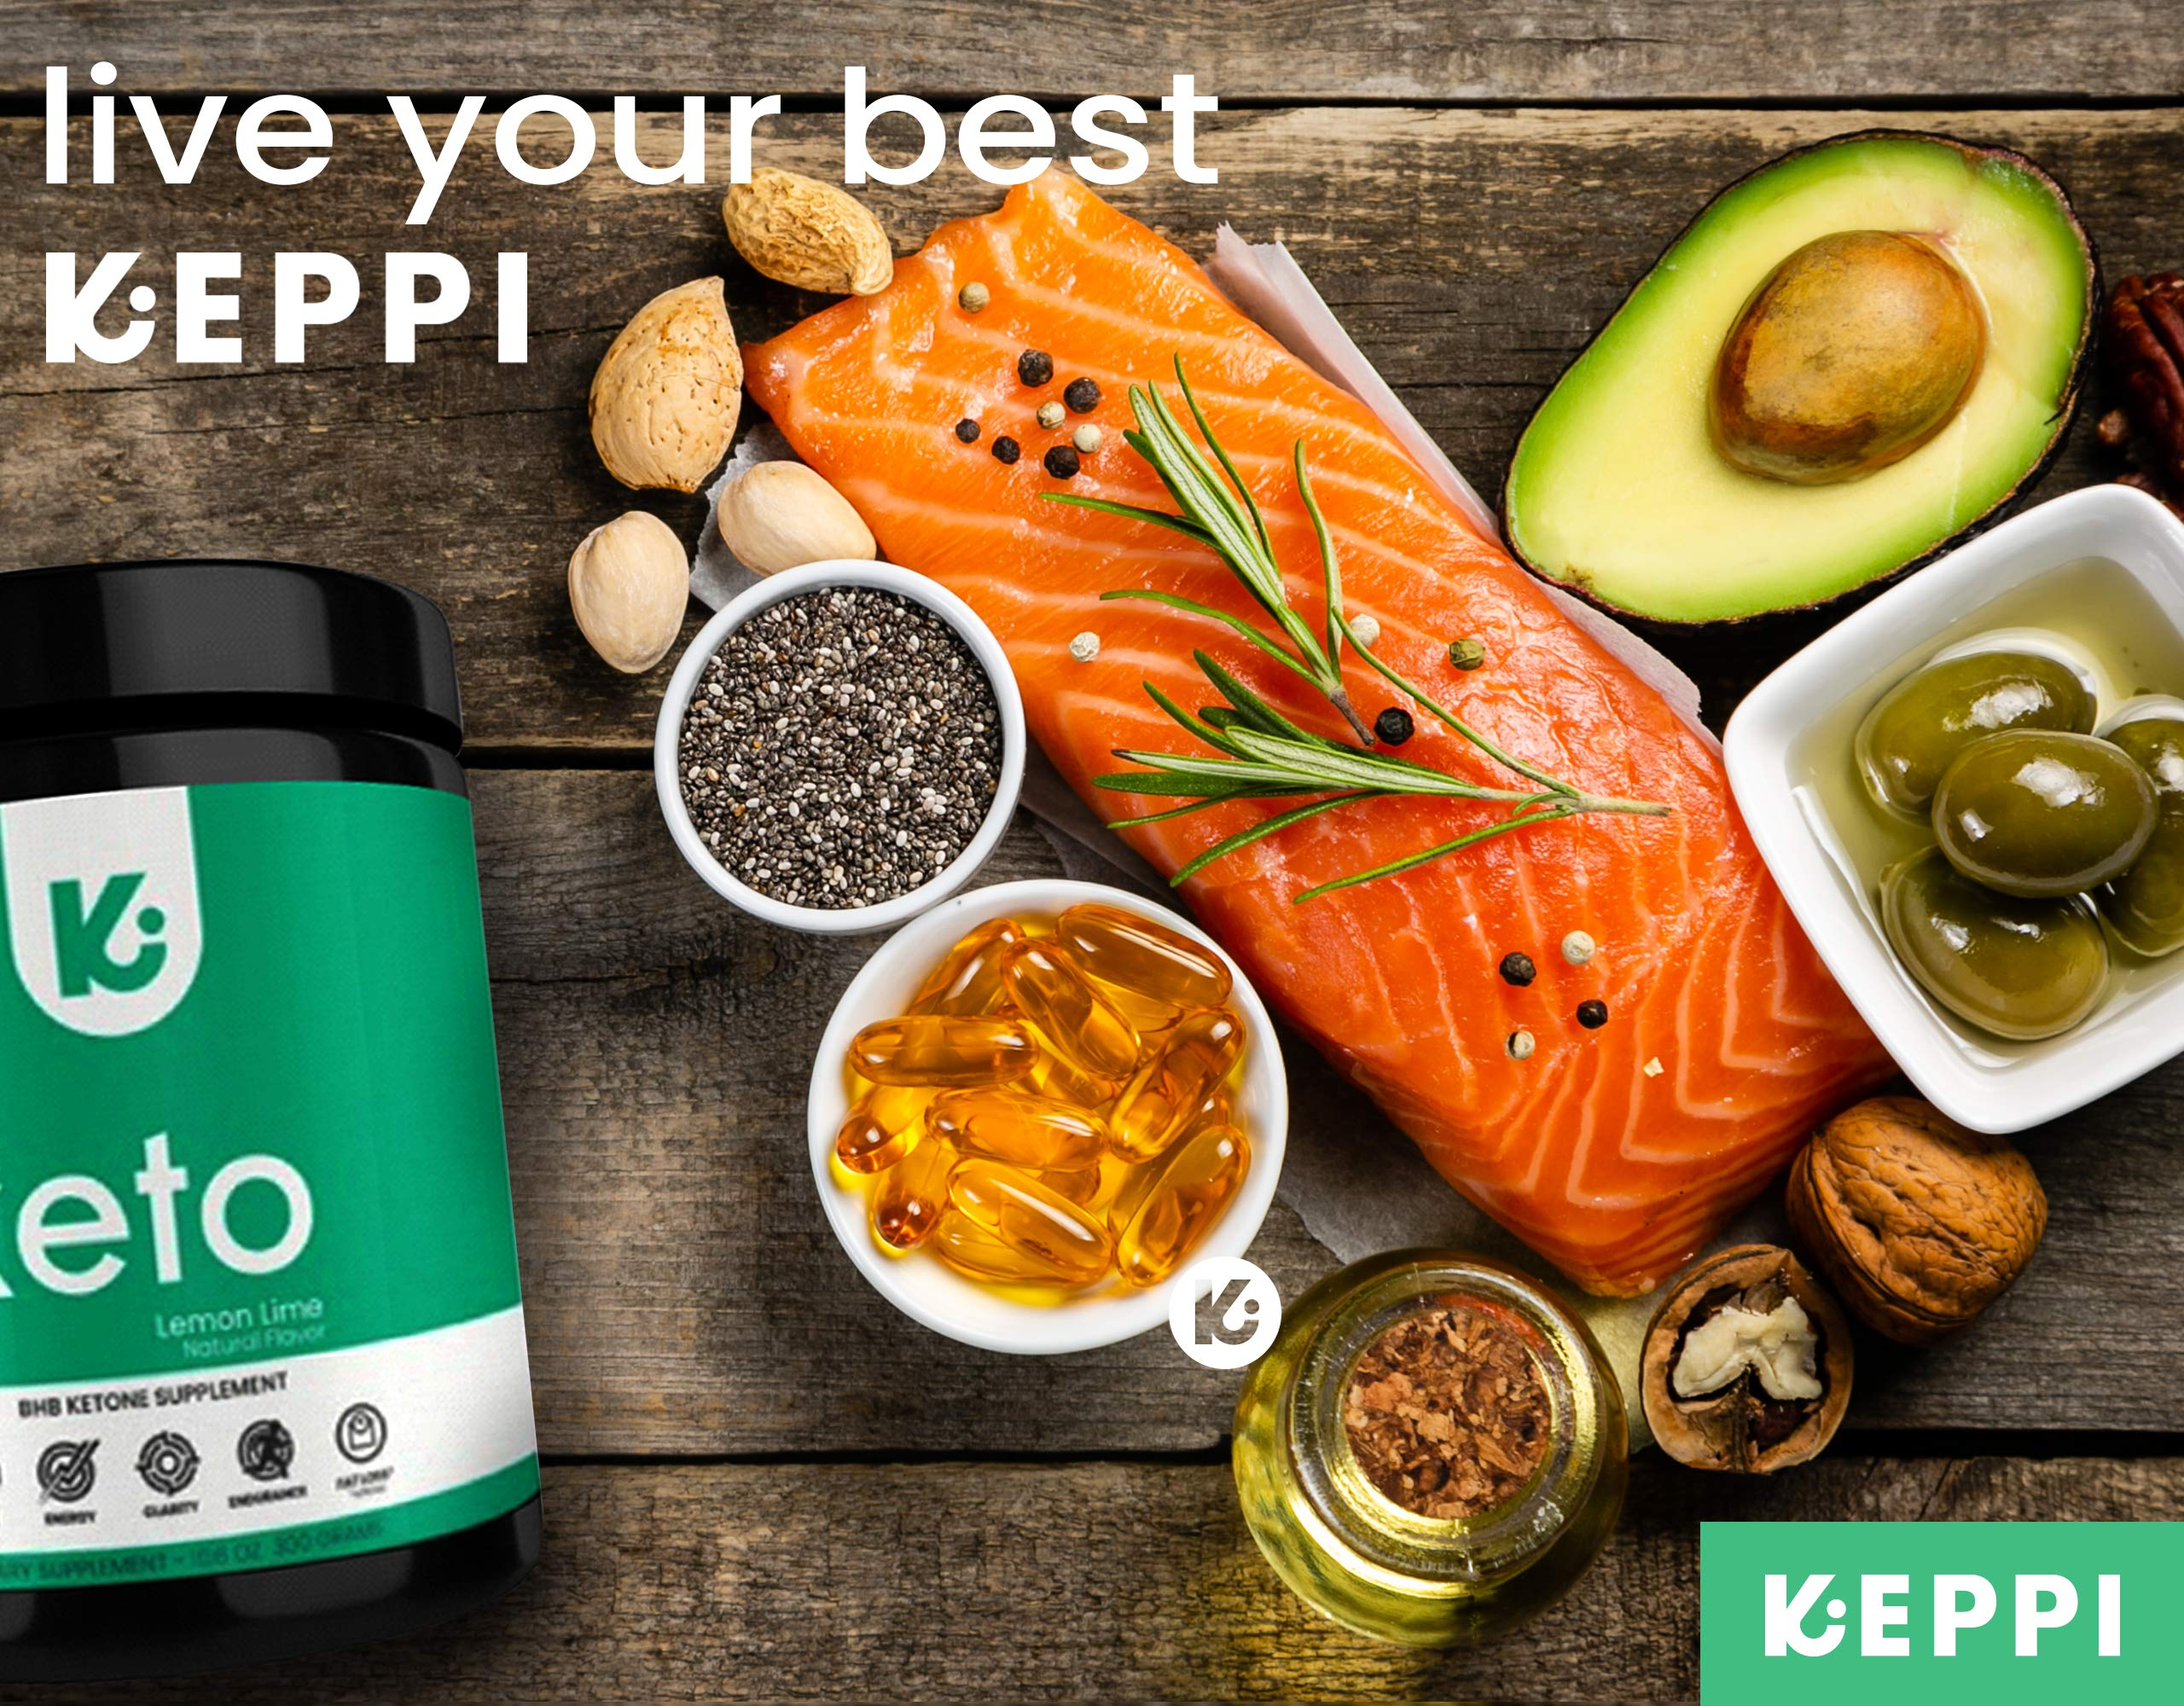 KEPPI Keto Exogenous Ketones Powder Supplement: Patented BHB Salts Formulated to Increase Energy, Burn Fat, Maintain Ketosis and Mental Focus on The Ketogenic Diet by Keppi (Image #9)